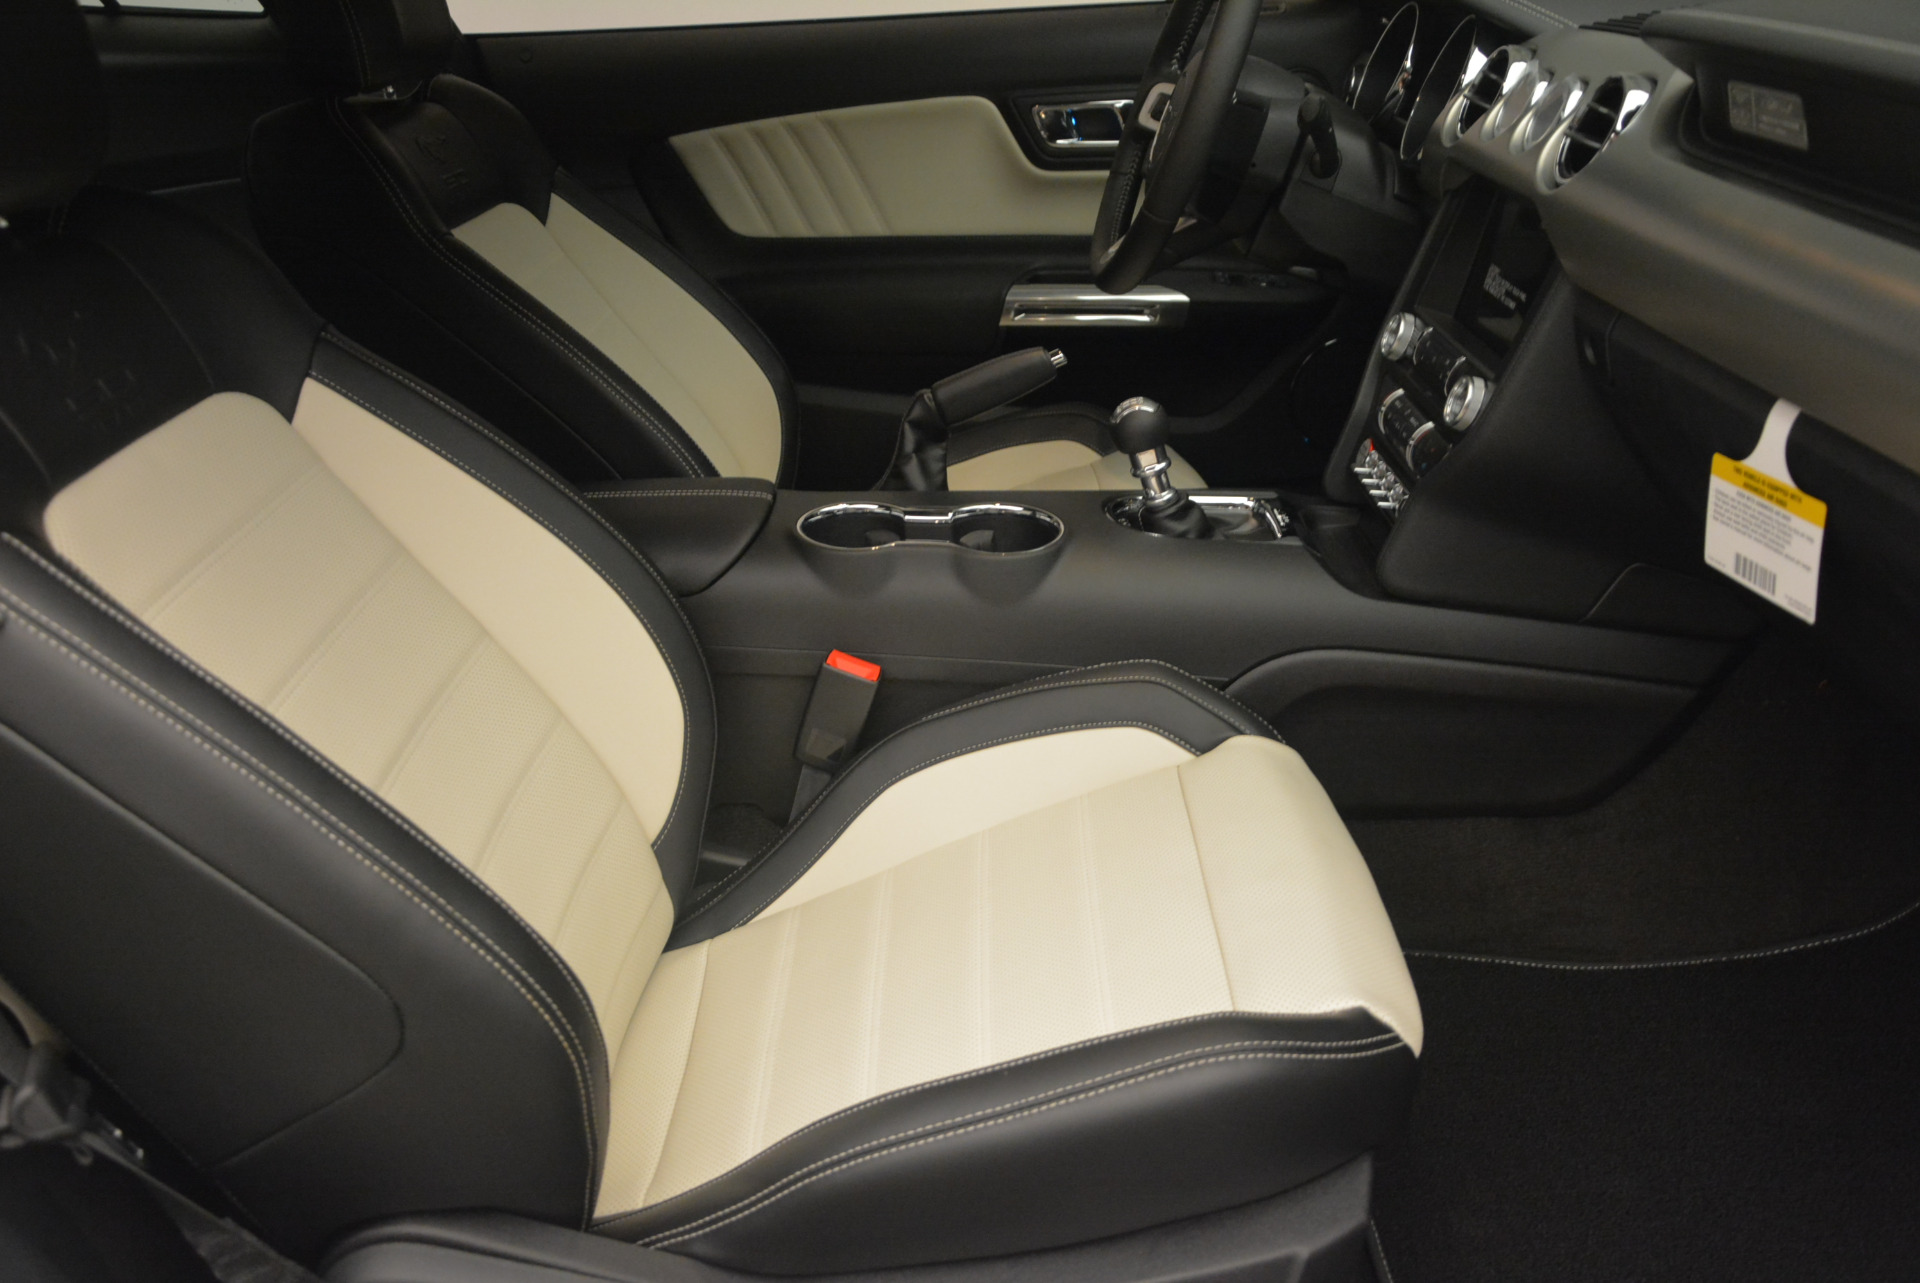 Used 2015 Ford Mustang GT 50 Years Limited Edition For Sale In Greenwich, CT 1793_p17